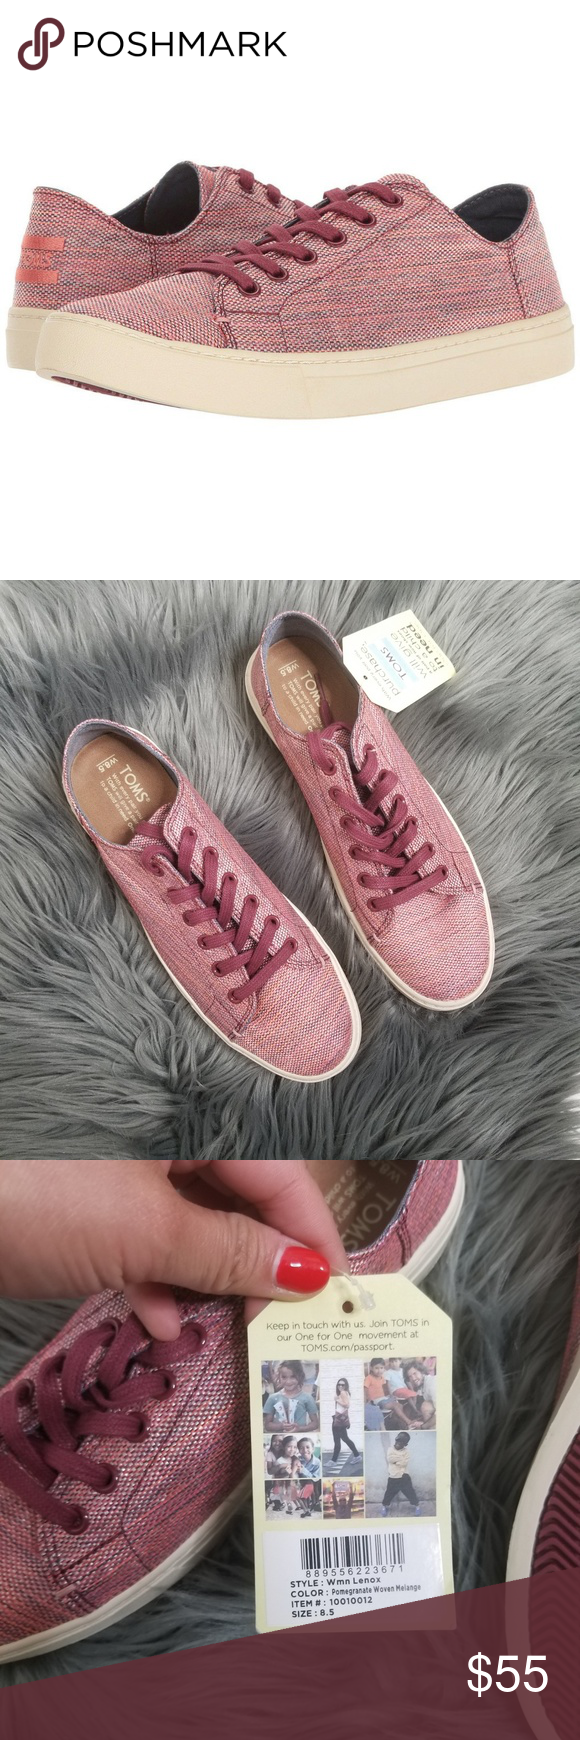 7e56c0747 NWT Tom s Women s Lenox Sneaker New with tags. No box Color  pomegranate  woven melange